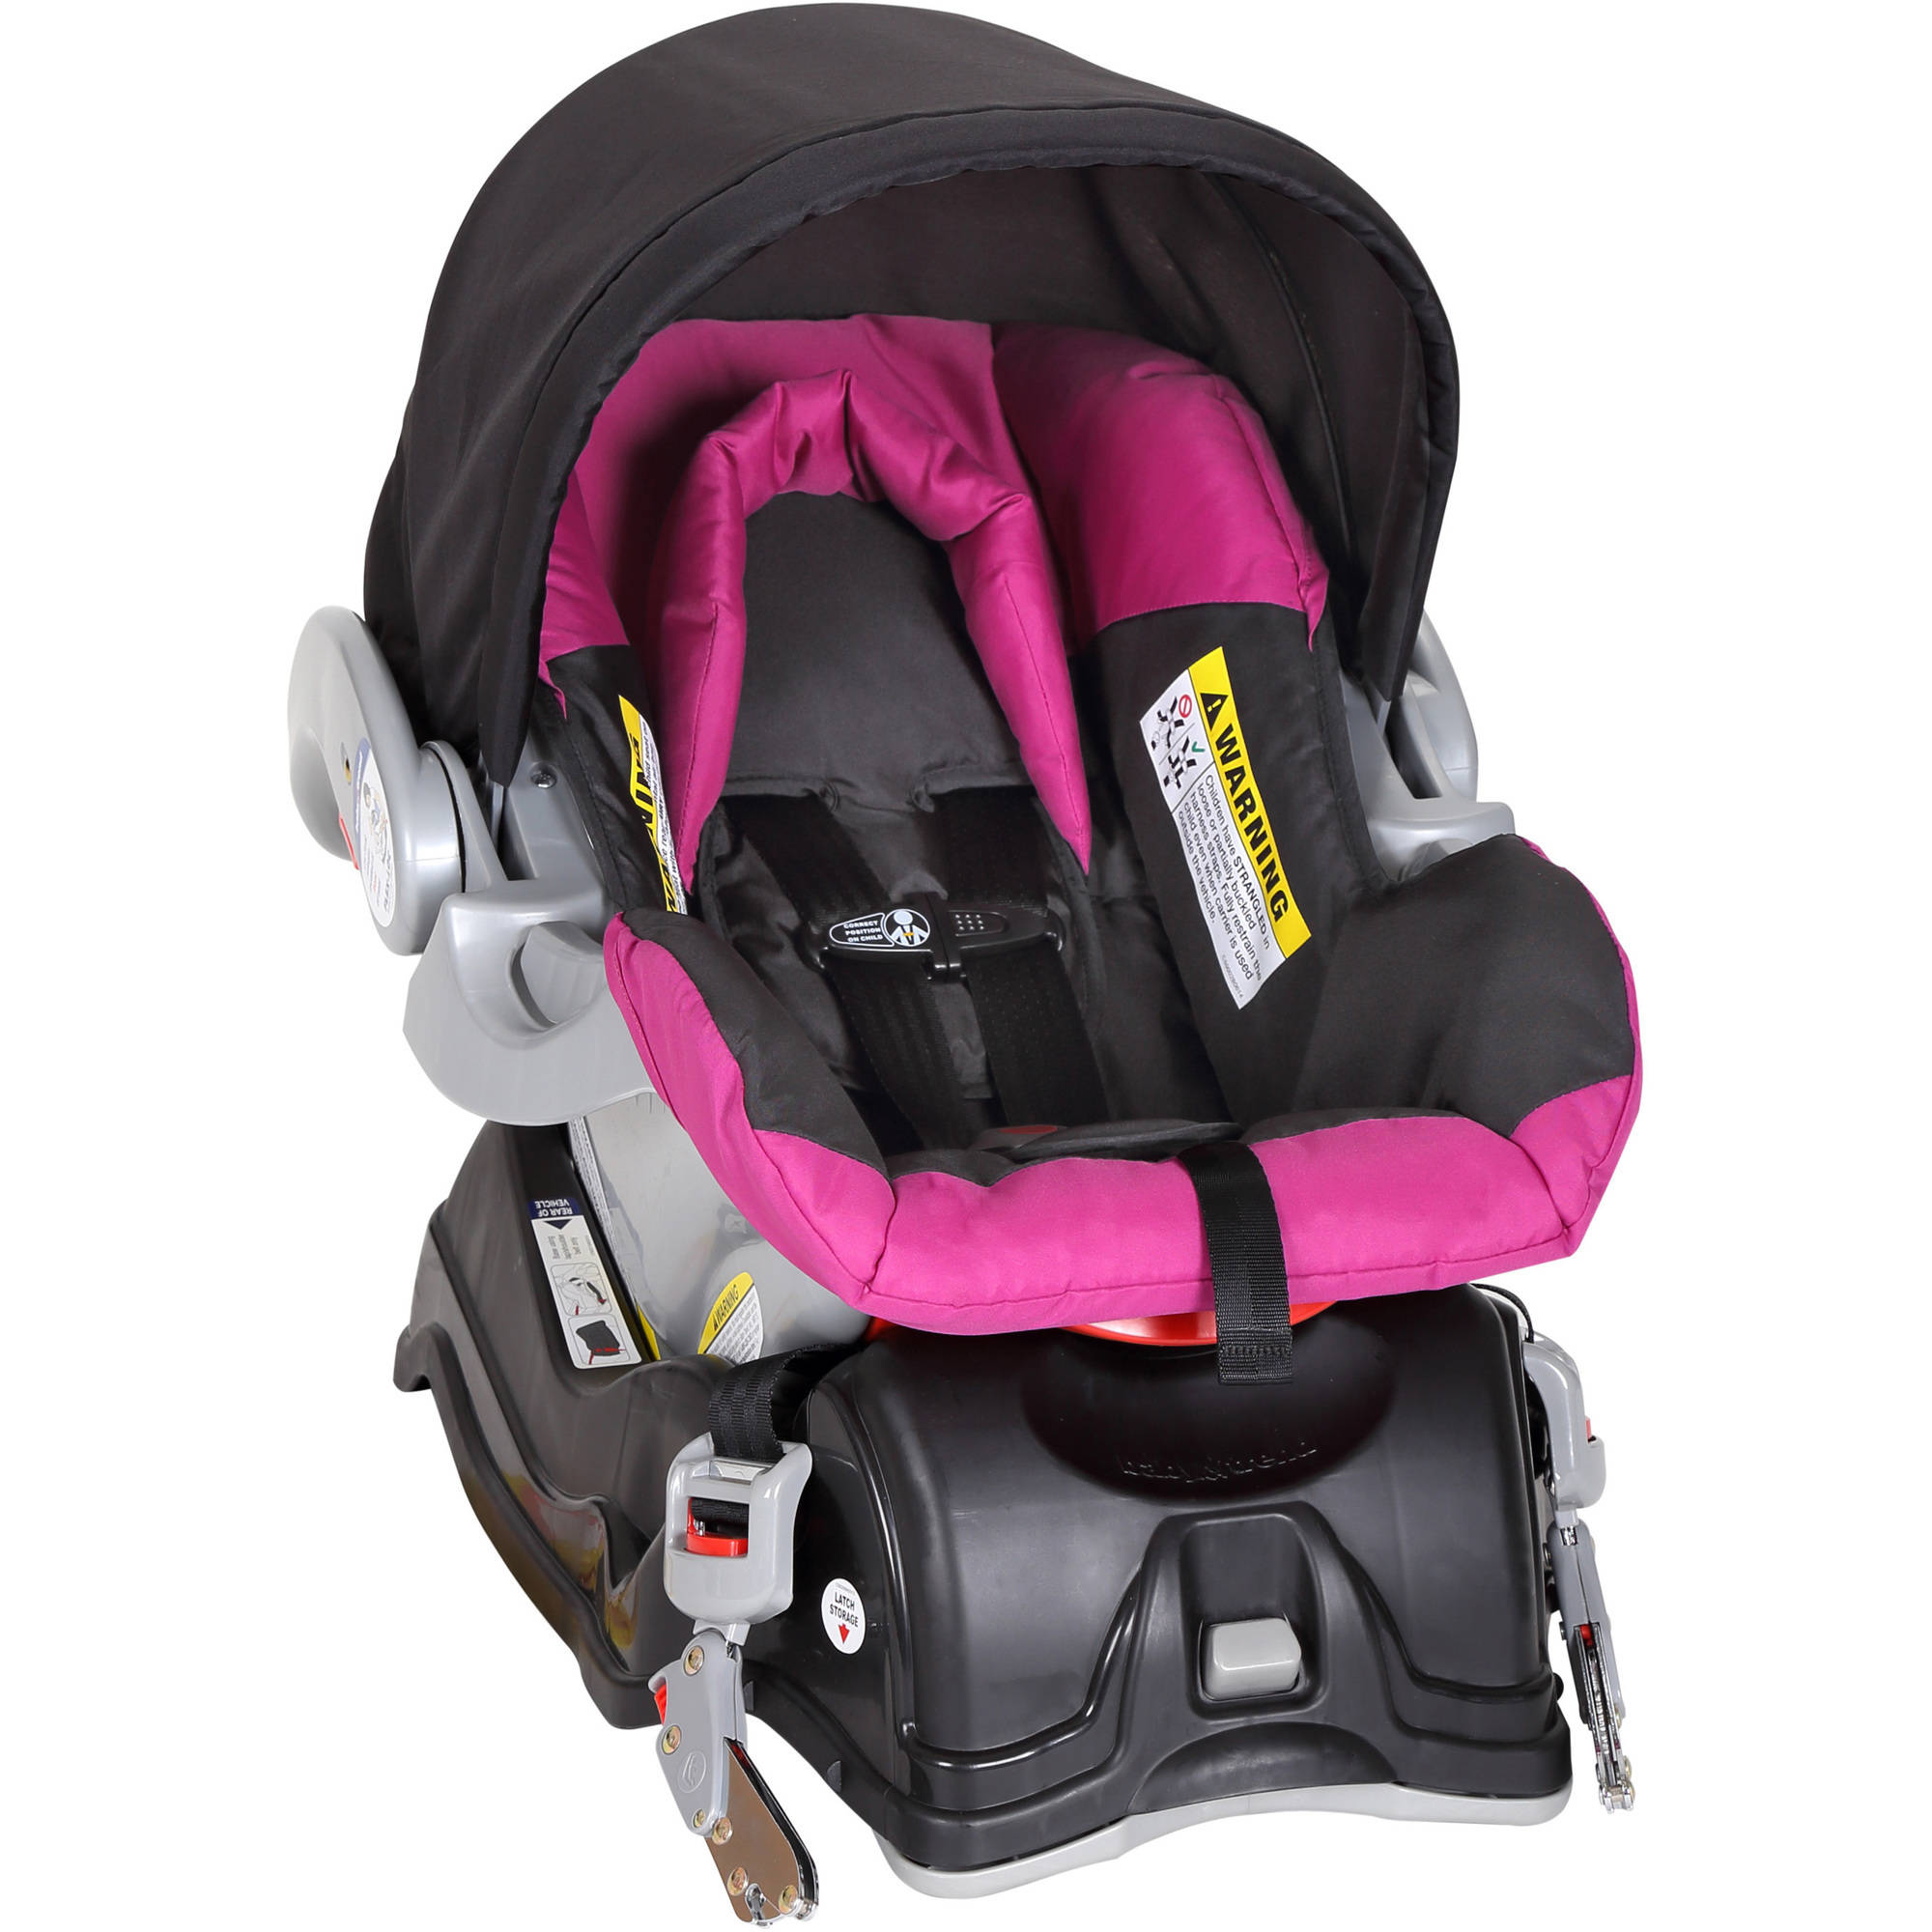 Travel System With Convertible Car Seat Infant Car Seat Travel Cover Court Appointed Receiver